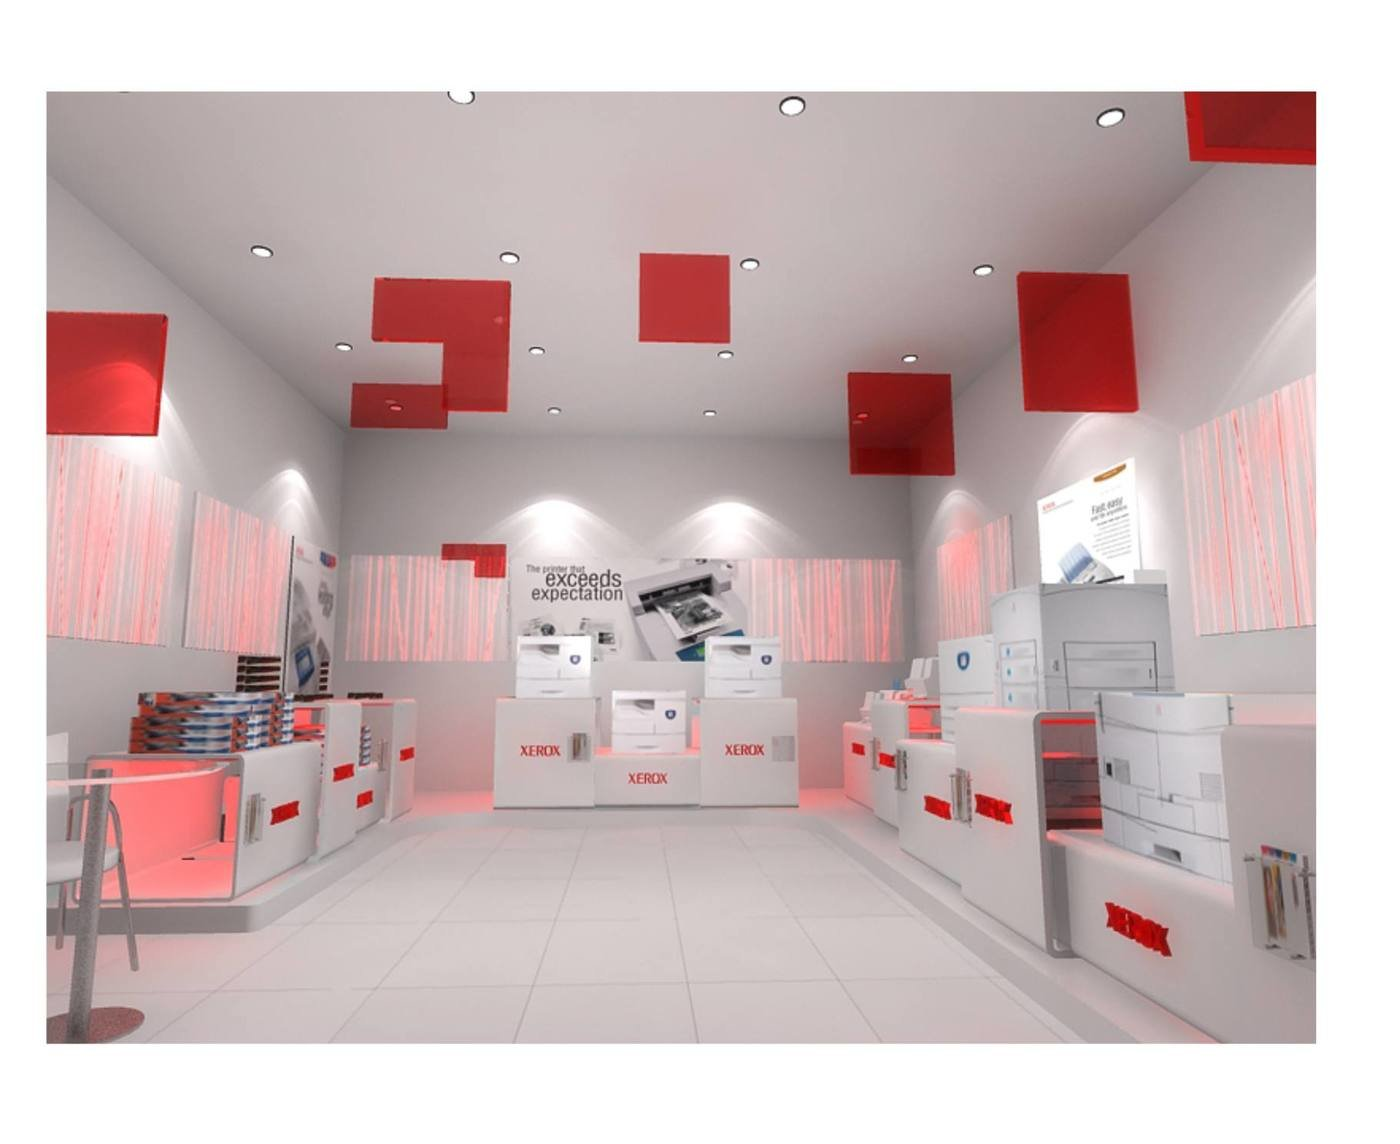 Nice Store Design For Xerox   Pixelated Squares Inside The Store.   Keeping The  Main Visual Element Of Lines For The Interiors ,pixelated Squares From The  Logo ...